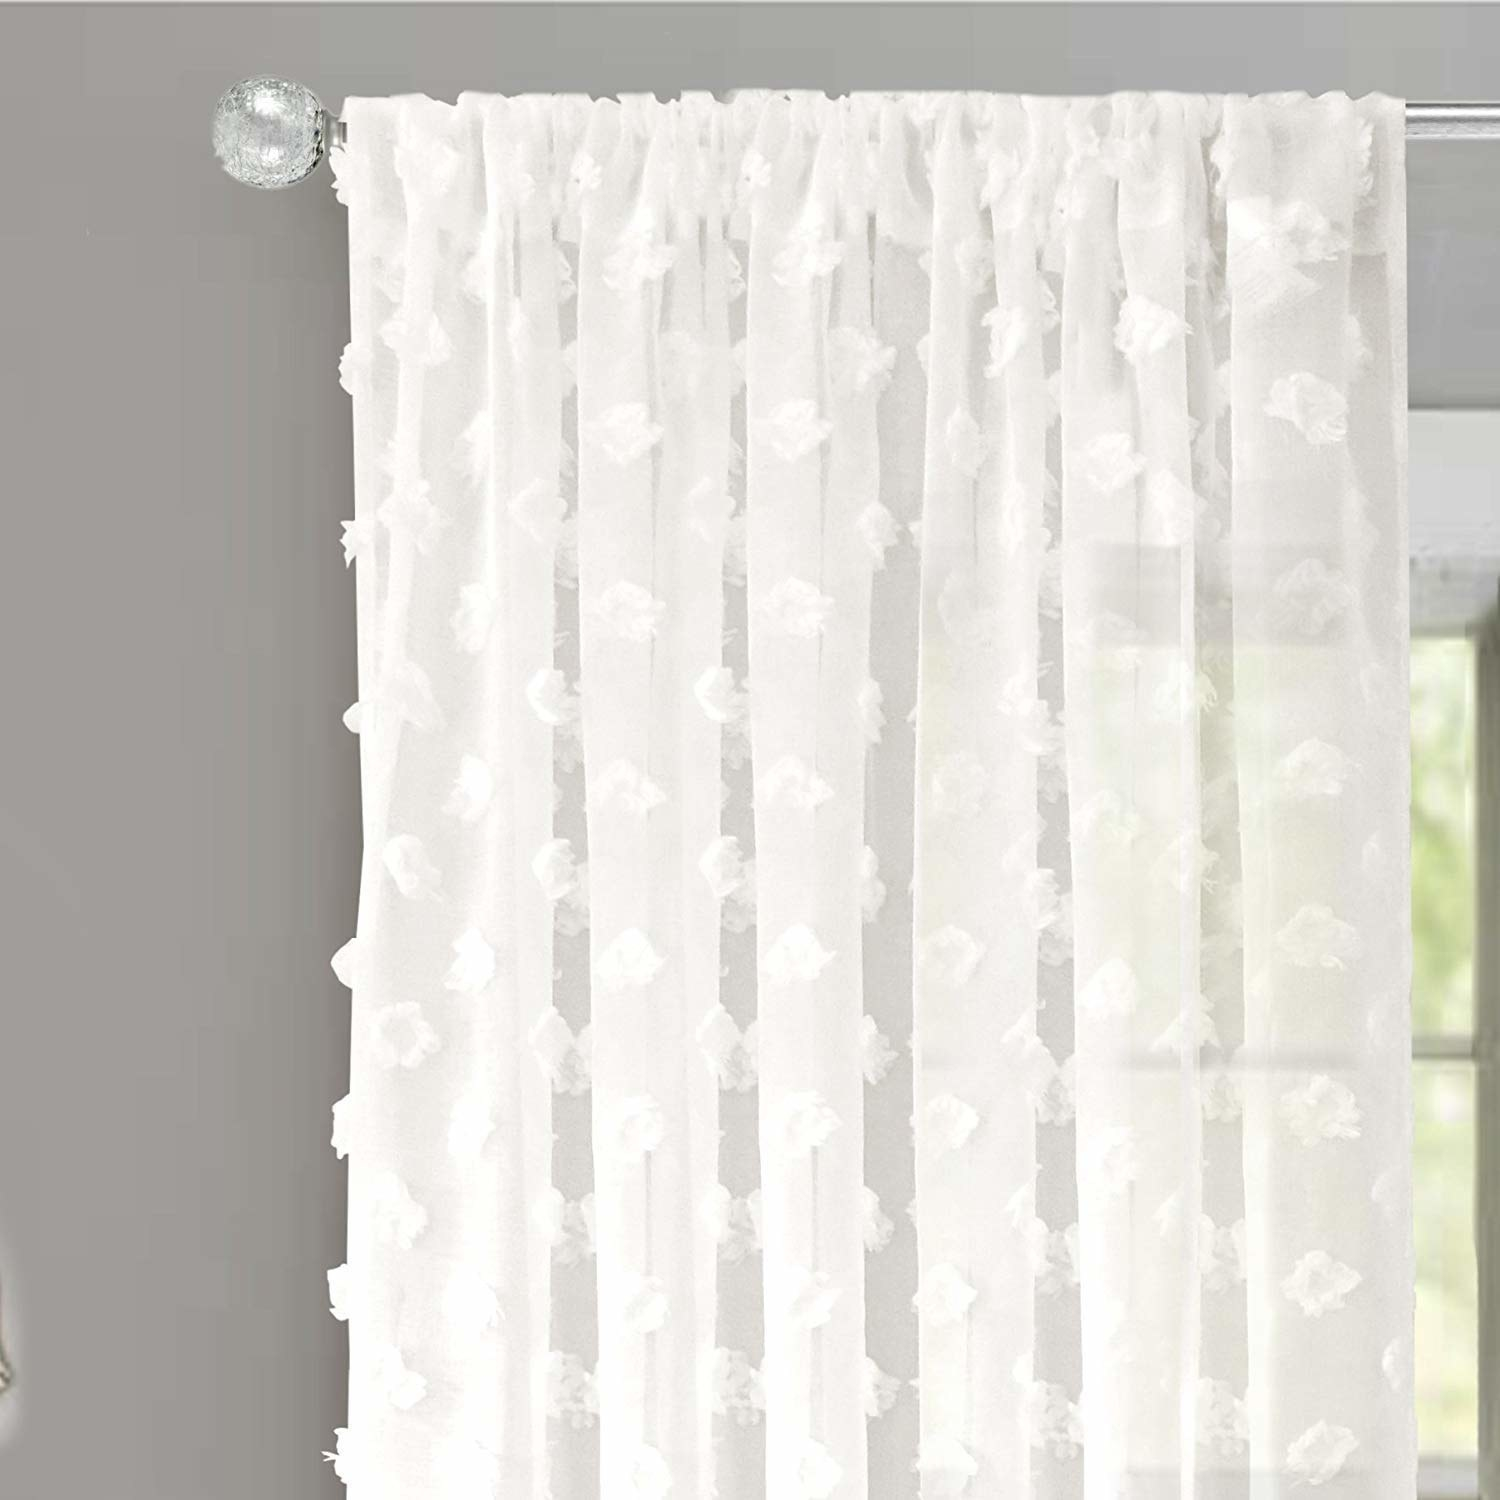 Sheer white curtains in front of a window